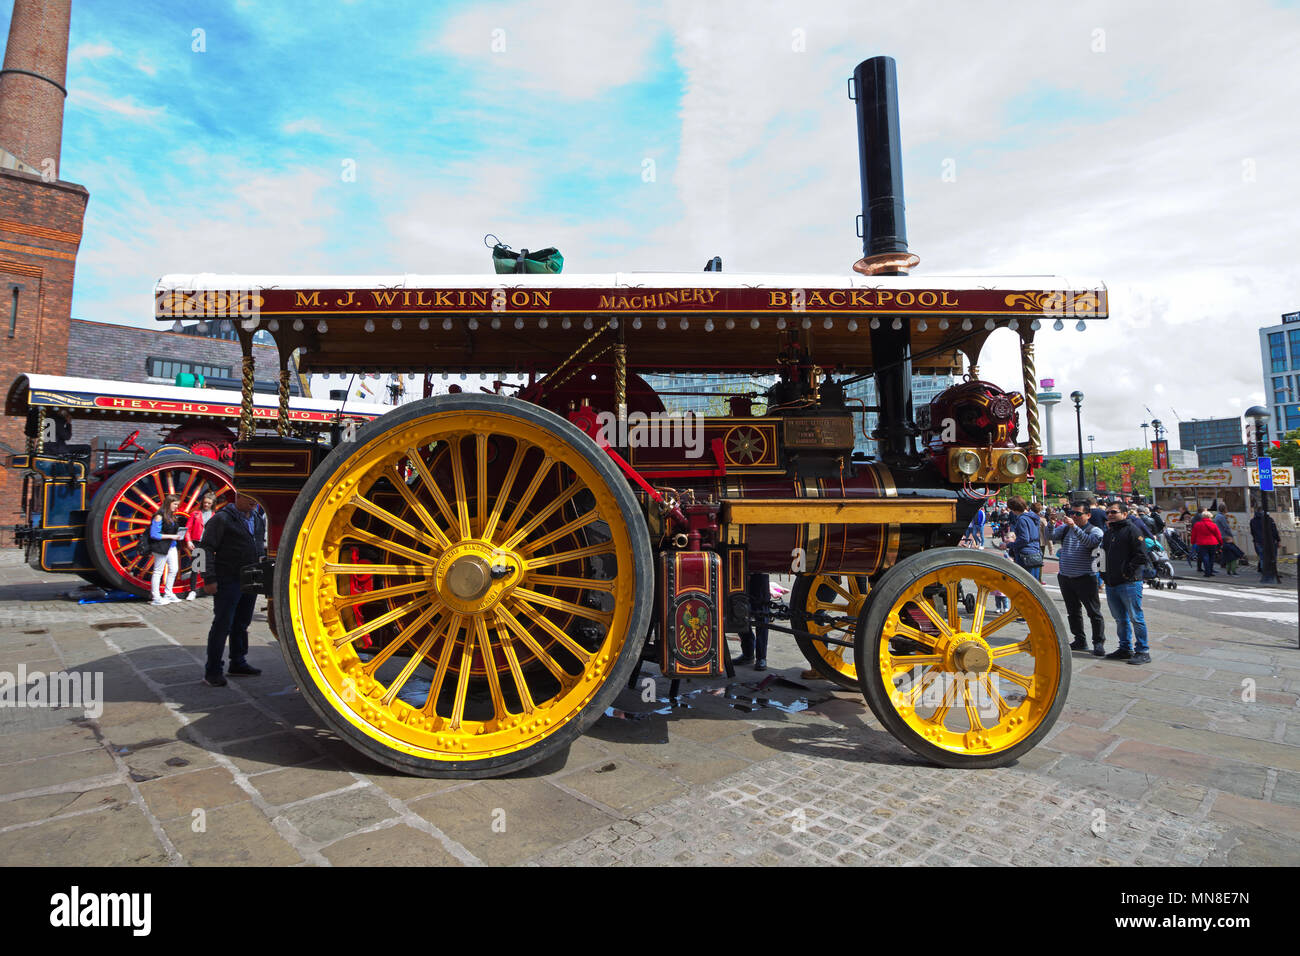 Foden Showmans Road Locomotive 2104, 'Prospector' at the 'Steam on the Dock' event at the Albert Dock Liverpool in May 2018. - Stock Image